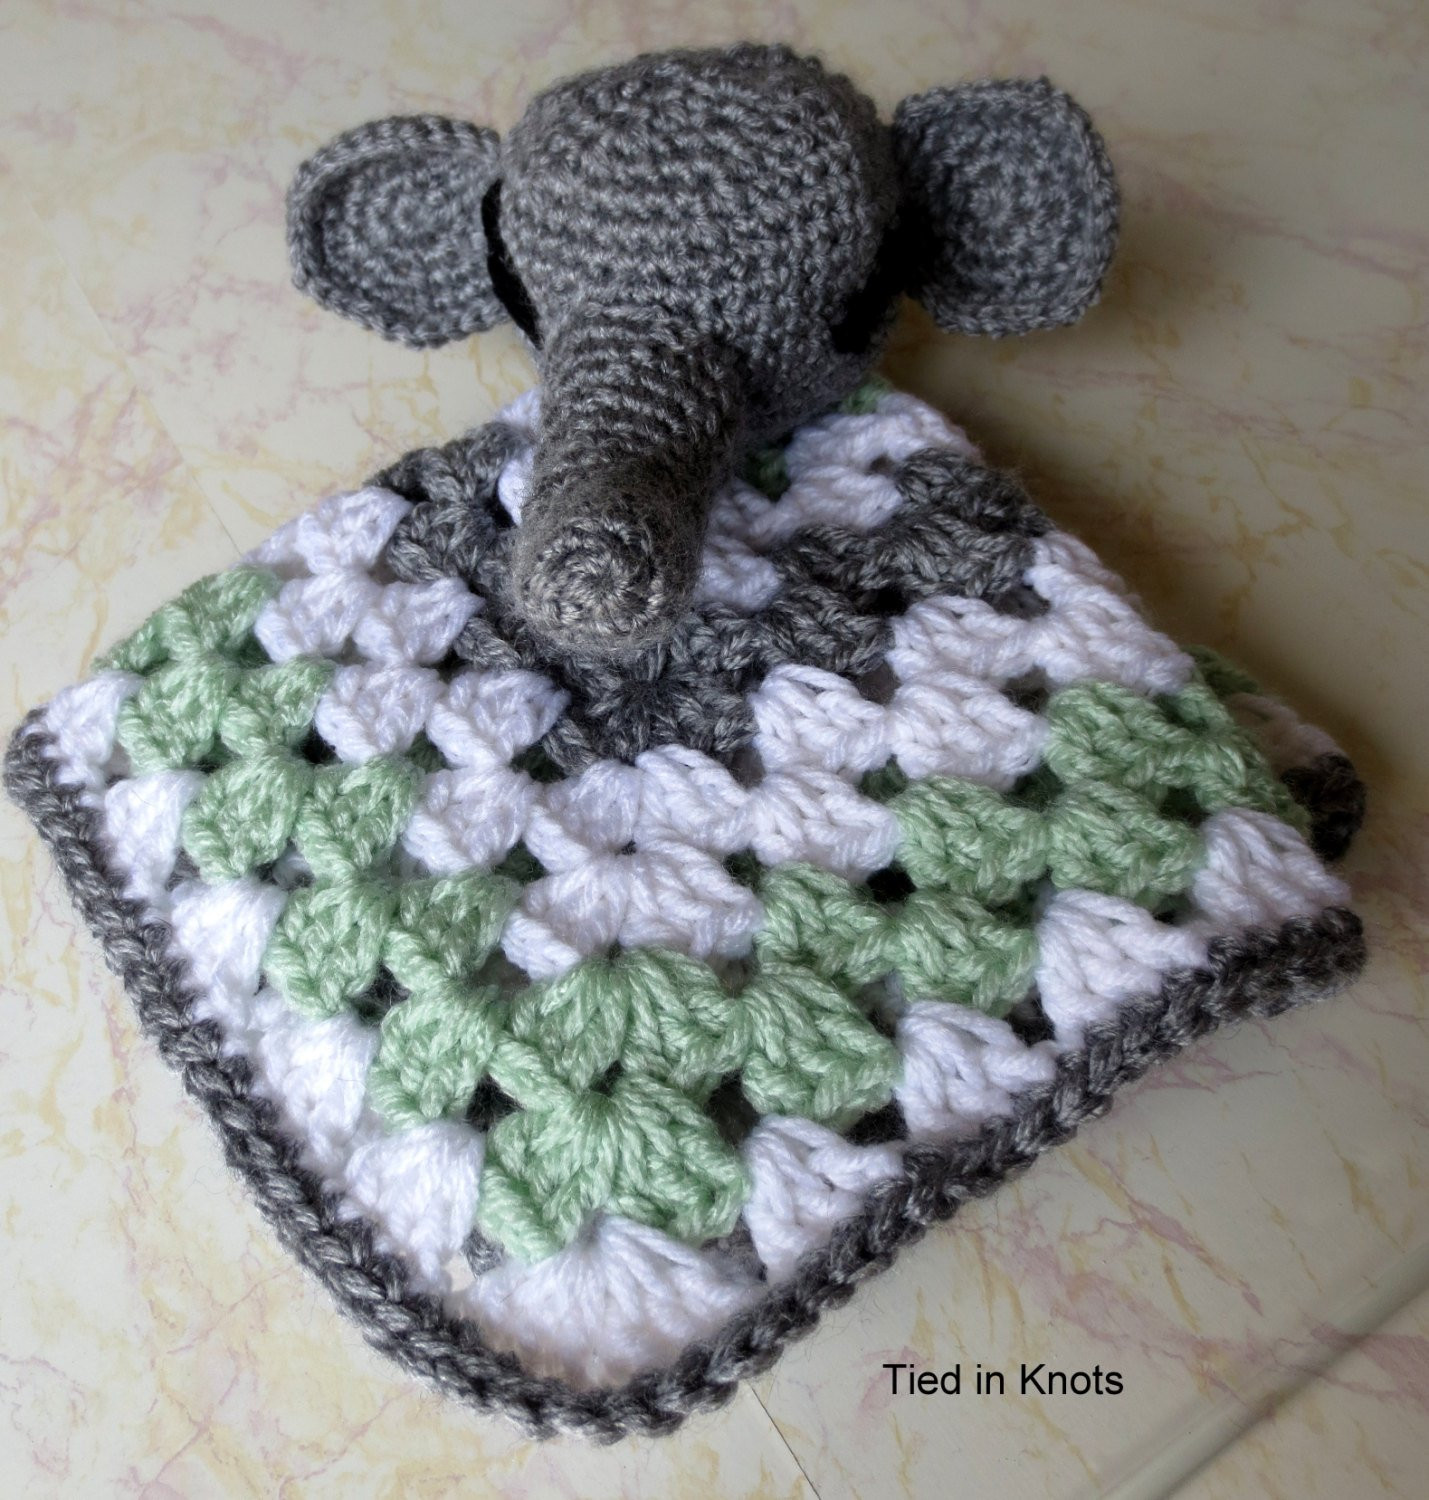 Crochet Elephant Blanket Beautiful Elephant Lovey Blanket Baby Elephant Snuggle Blanket Of Awesome 44 Ideas Crochet Elephant Blanket